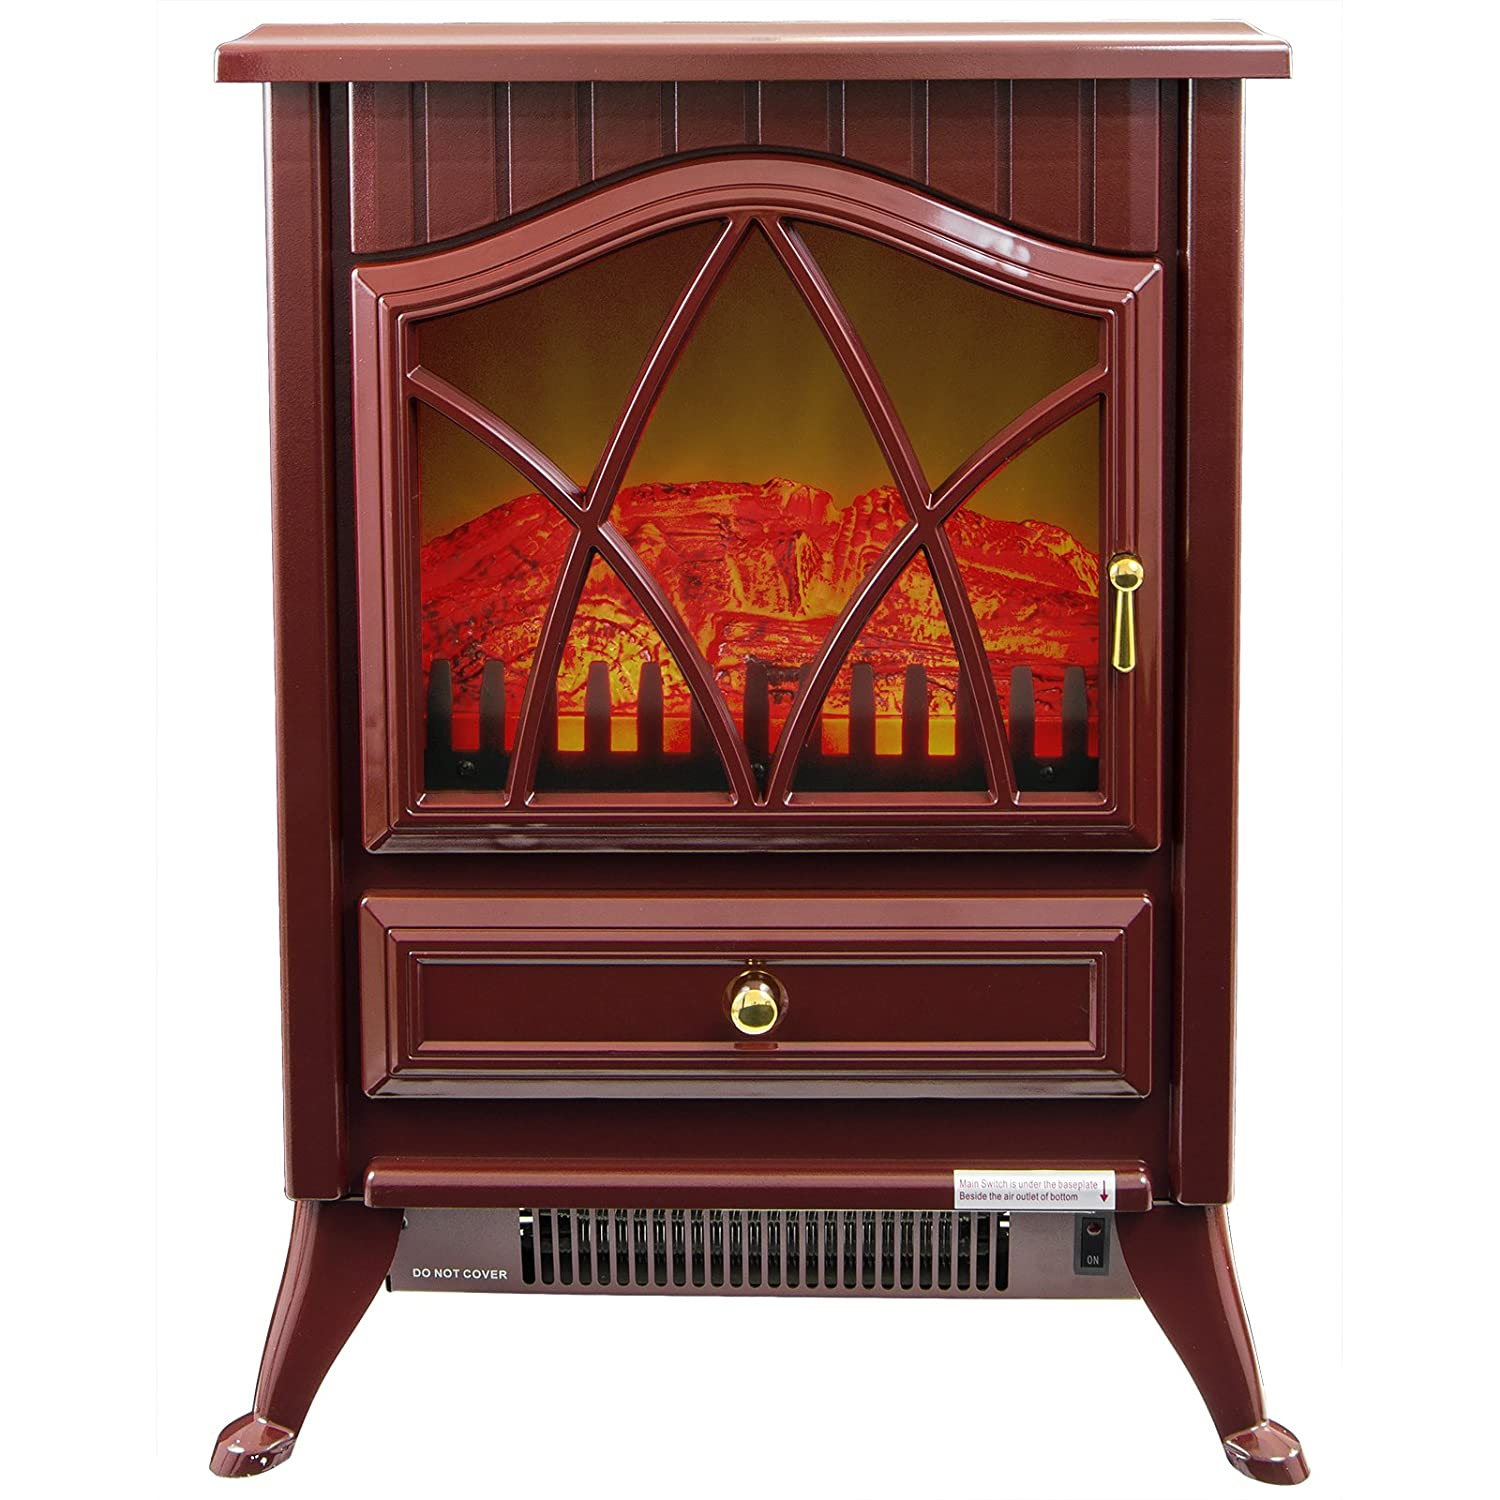 flame ft heaters sq logs realistic p red with akdy and in vintage electric fireplace glass stove door